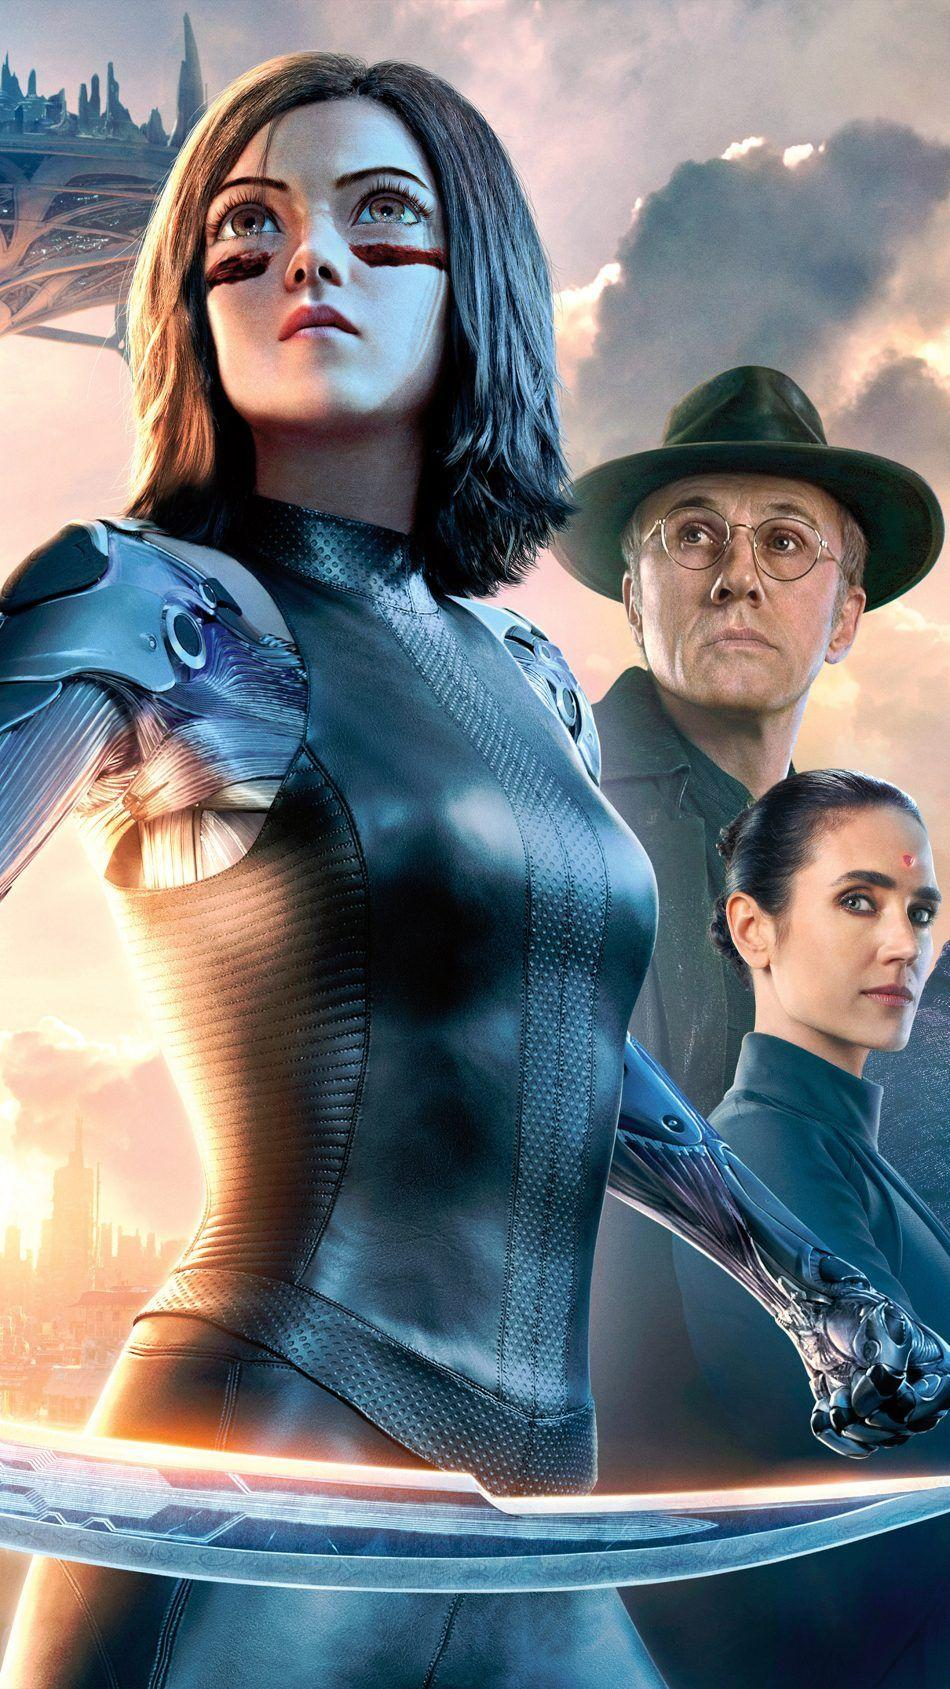 Download Alita Battle Angel Sci Fi Movie 2019 Free Pure 4K Ultra HD